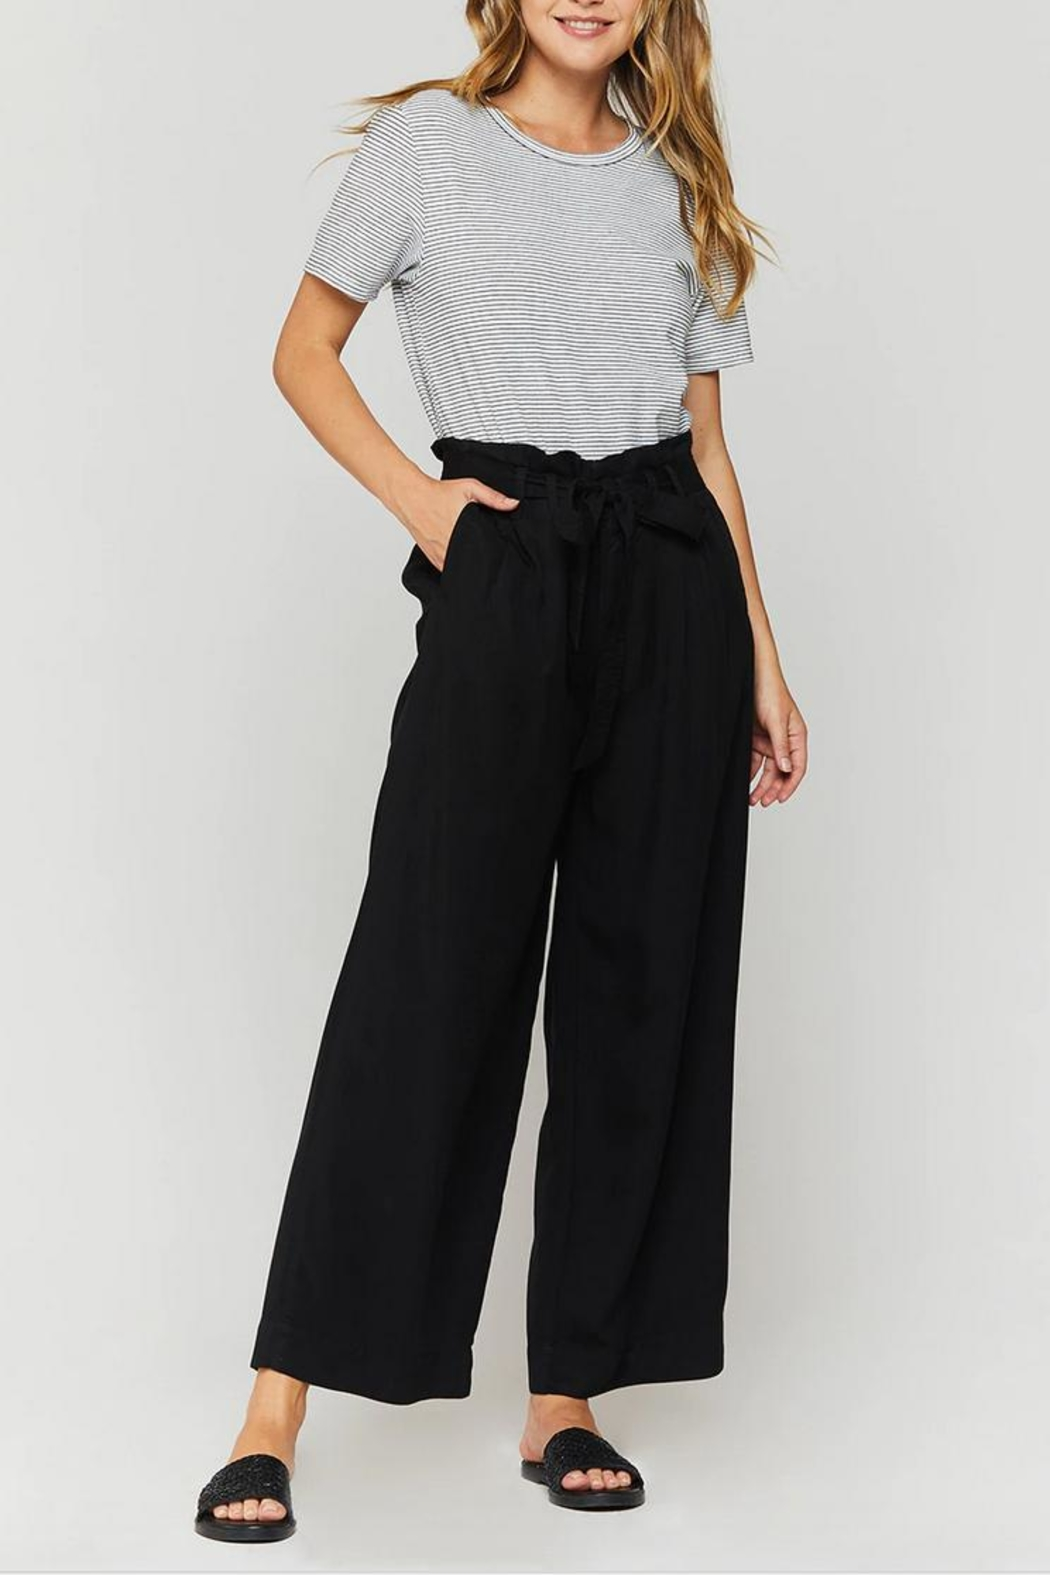 Velvet Heart Amandine Paperbag Pant - Front Cropped Image